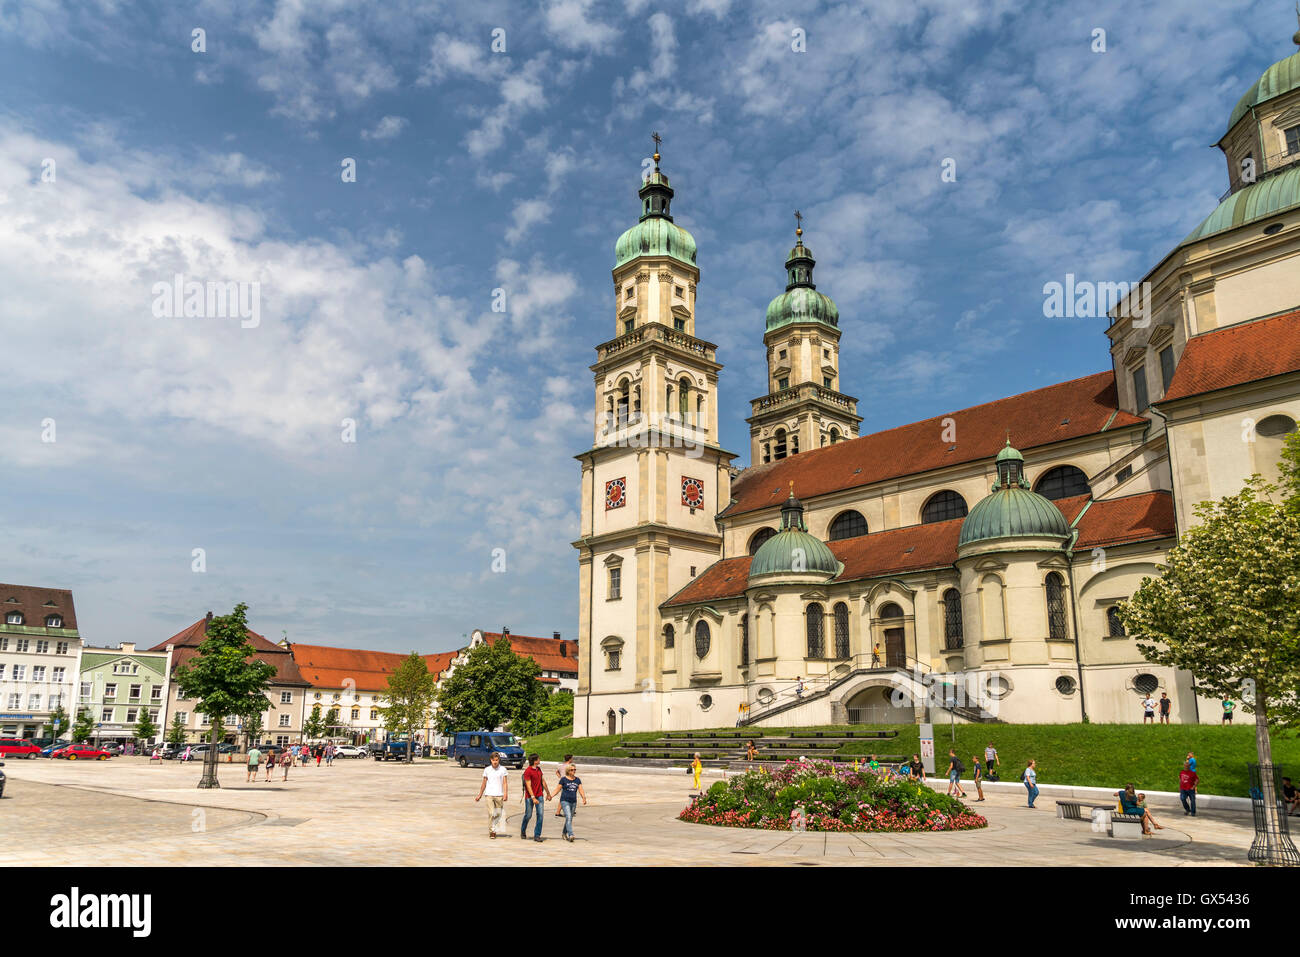 basilika st lorenz in kempten allgaeu bayern deutschland stock photo 119356250 alamy. Black Bedroom Furniture Sets. Home Design Ideas